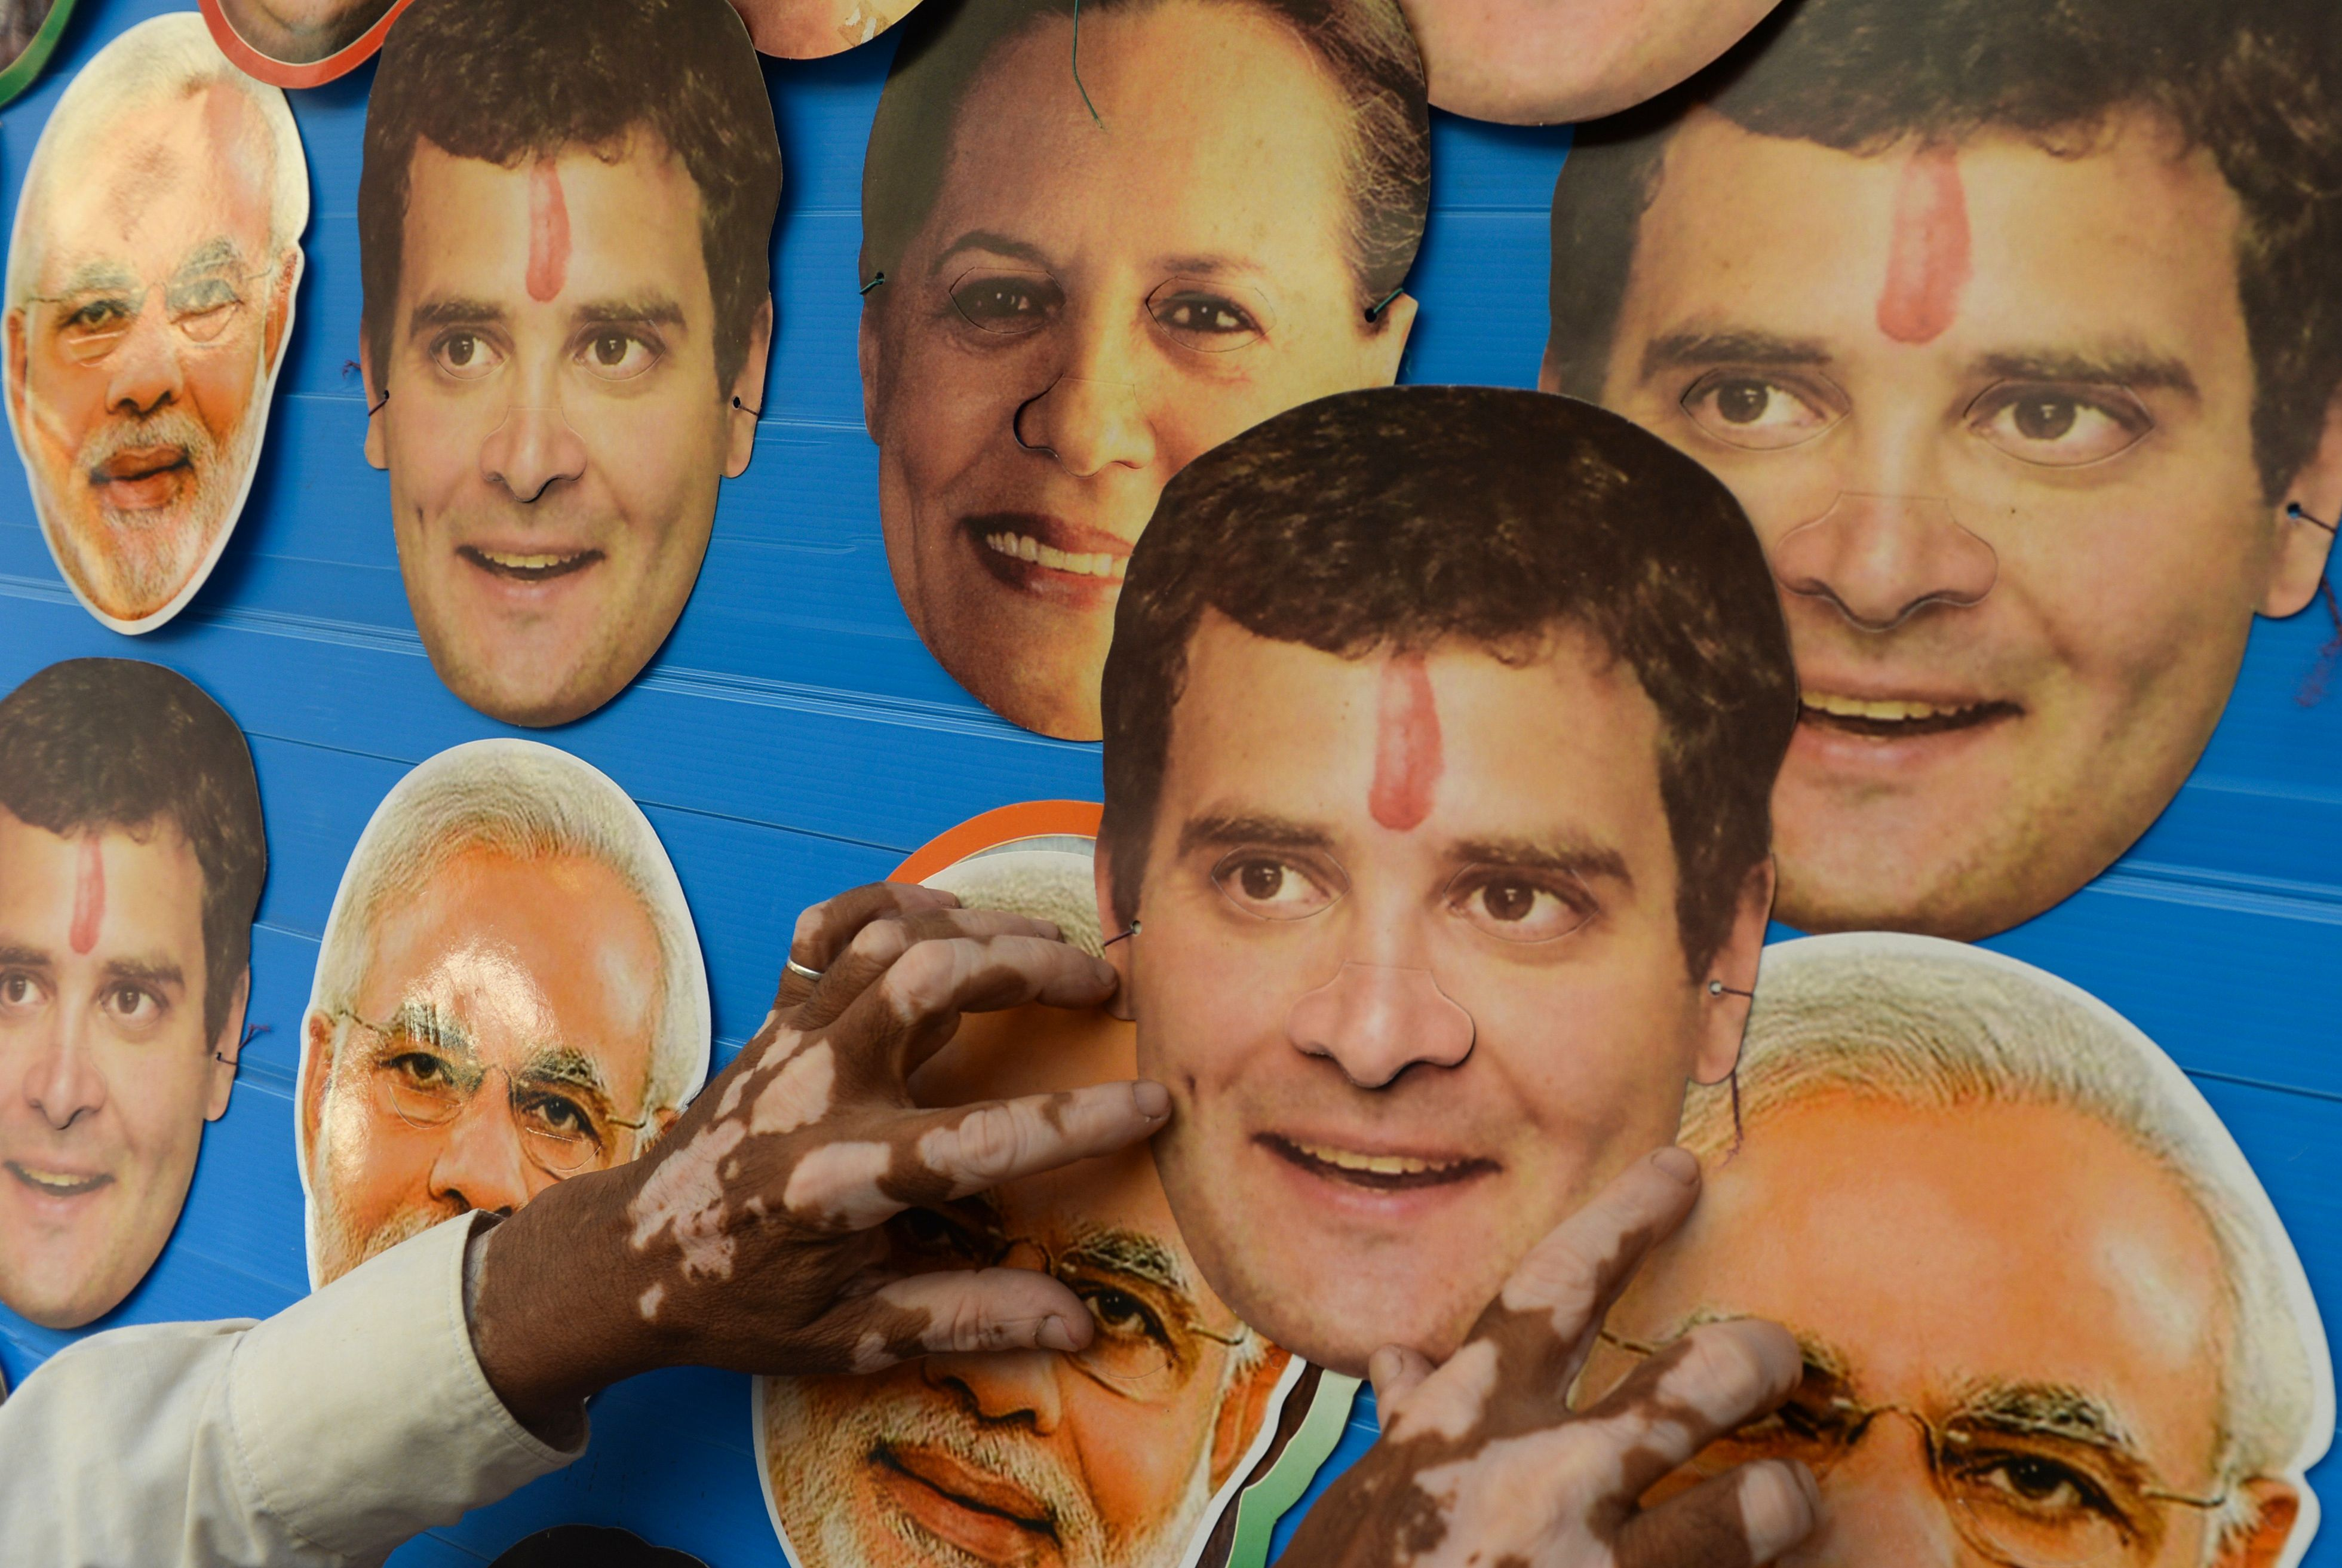 Indian Congress Party President Rahul Gandhi is seeking to unseat Prime Minister Narendra Modi in upcoming elections.